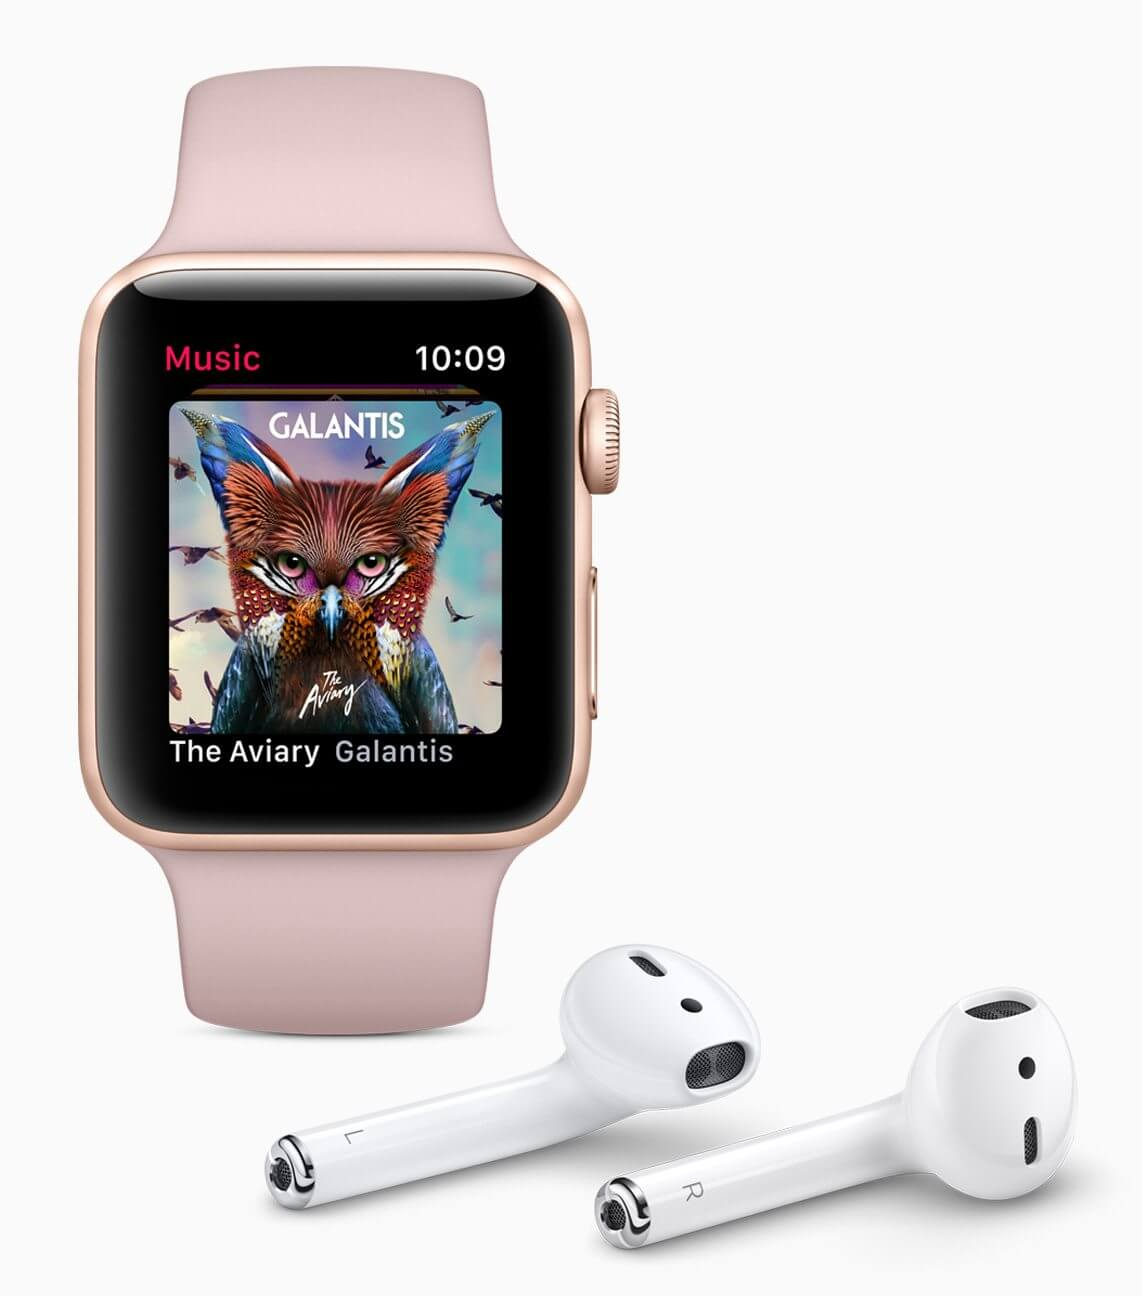 watch series 3 music airpods - REVIEW: Apple Watch Series 3, o wearable do momento